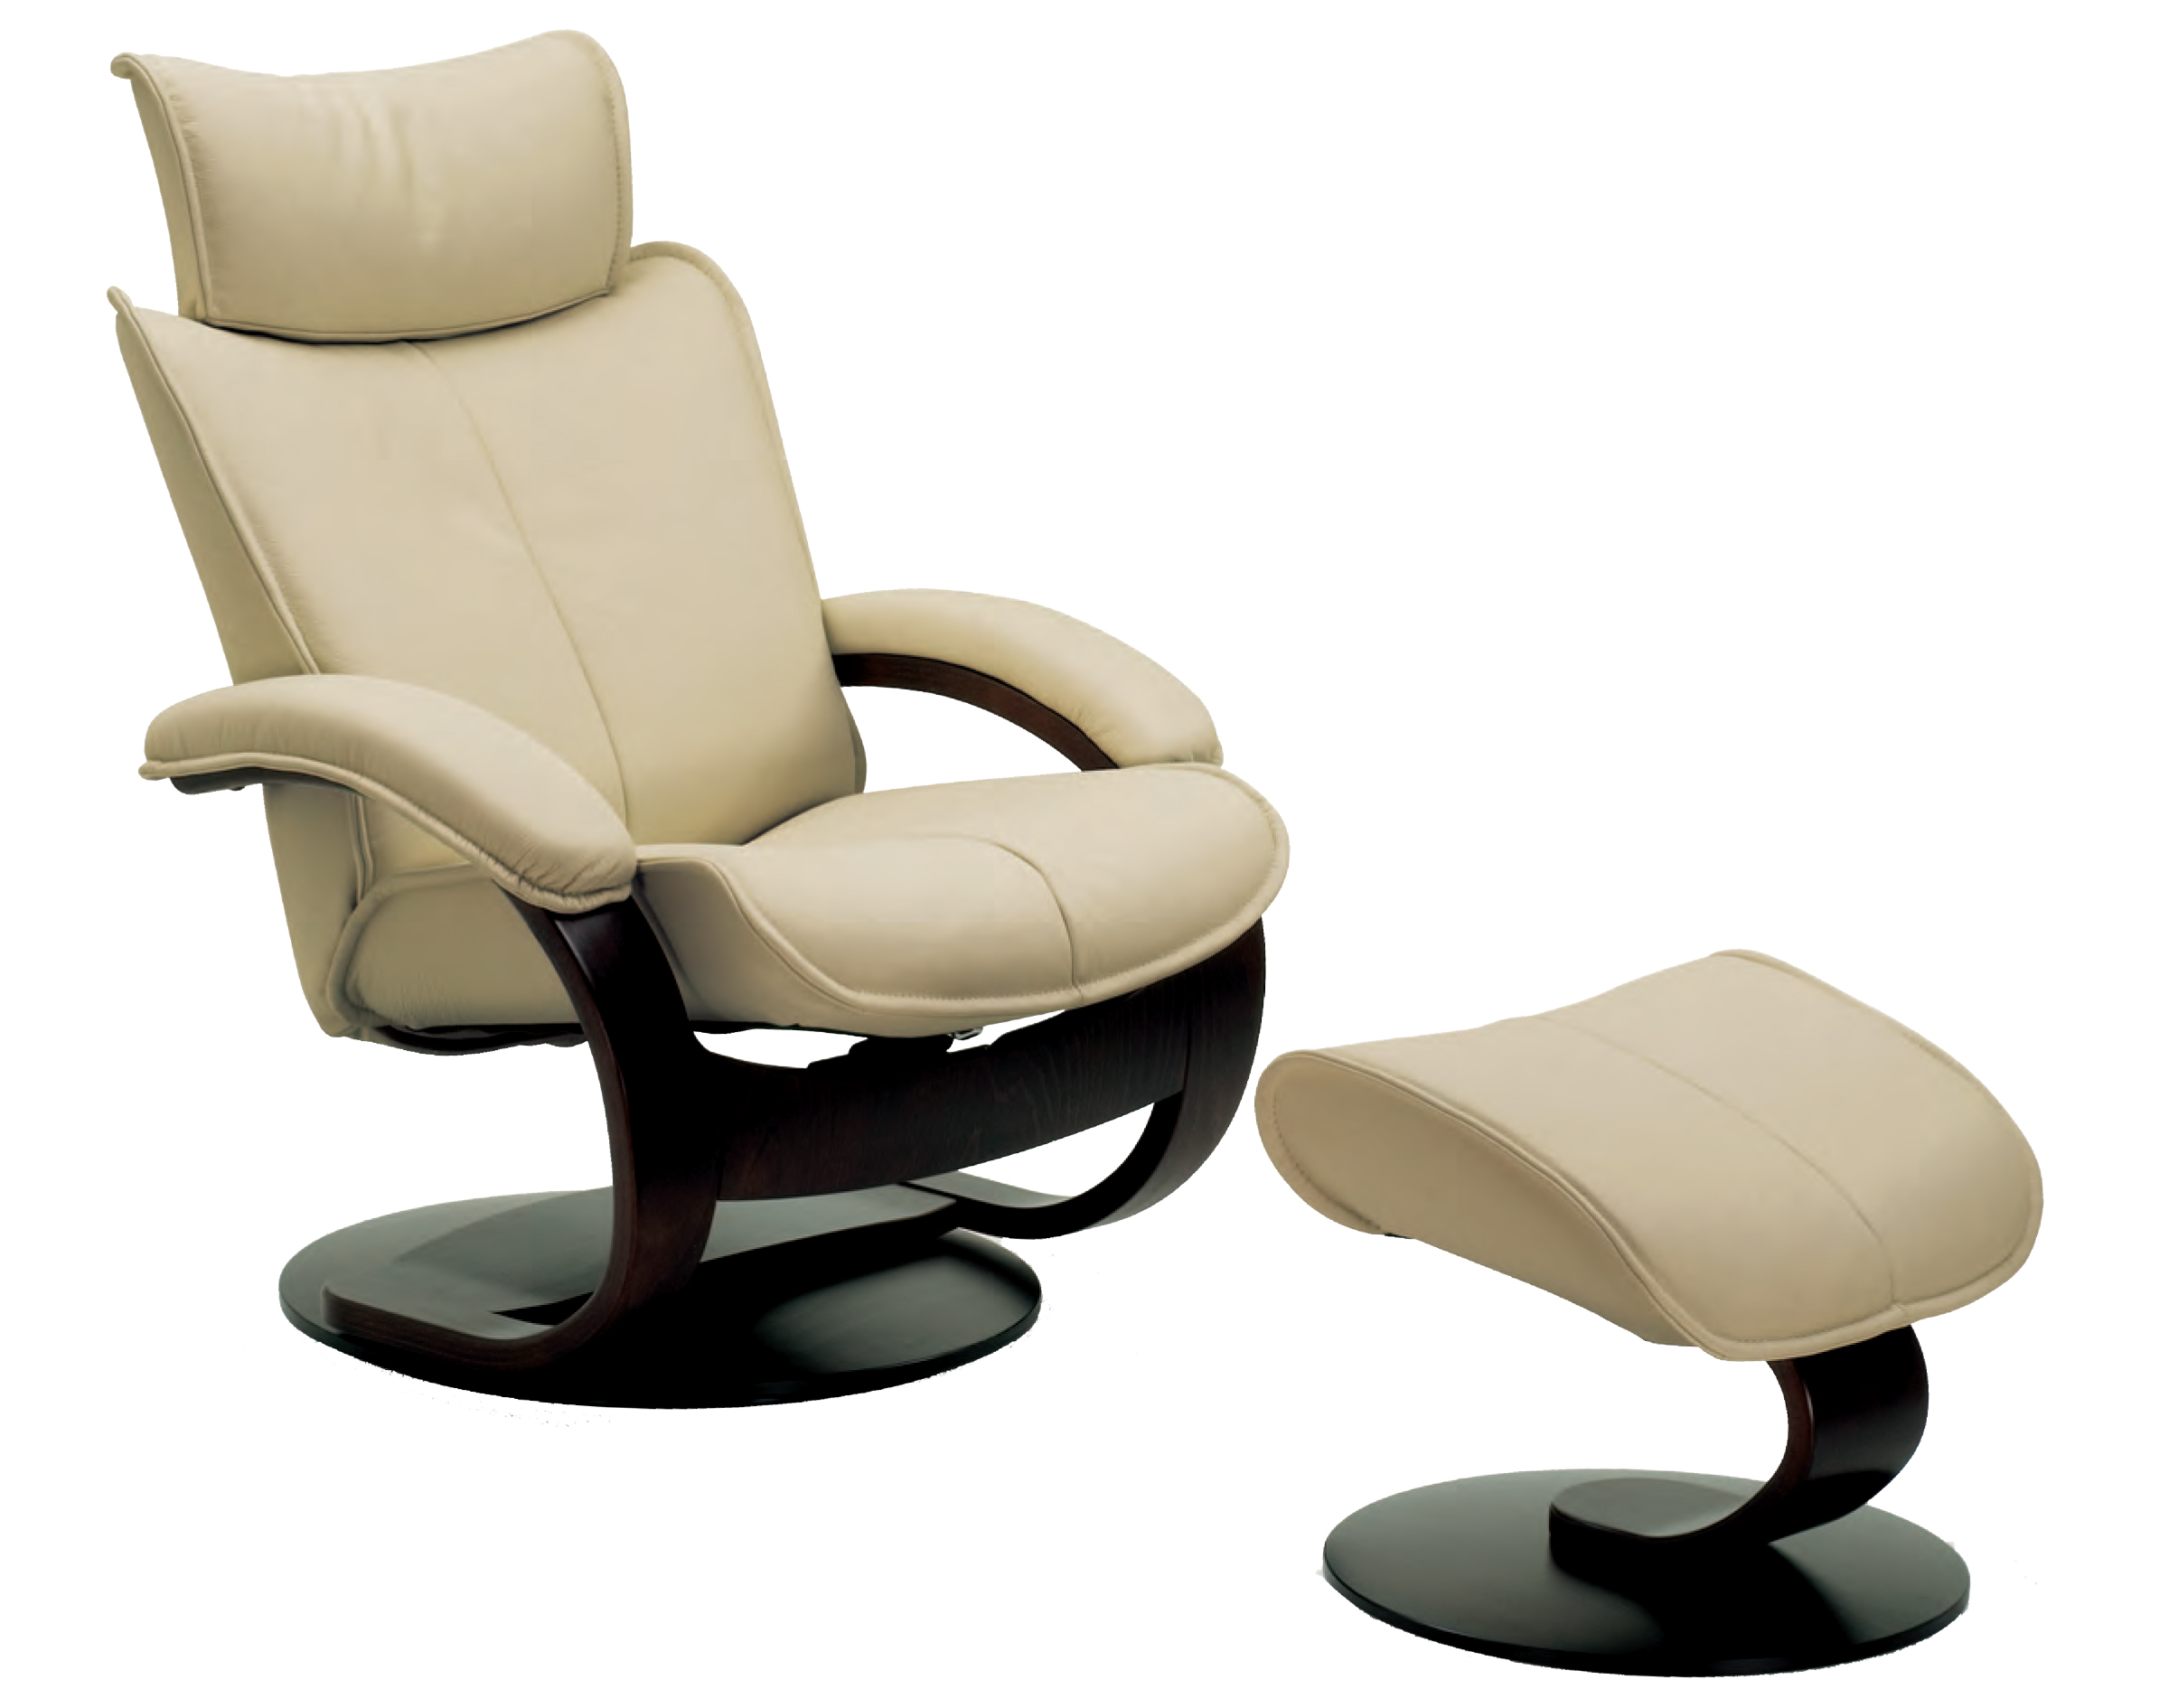 senator recliner chair fjords ottoman information ergonomic and leather backstore htm